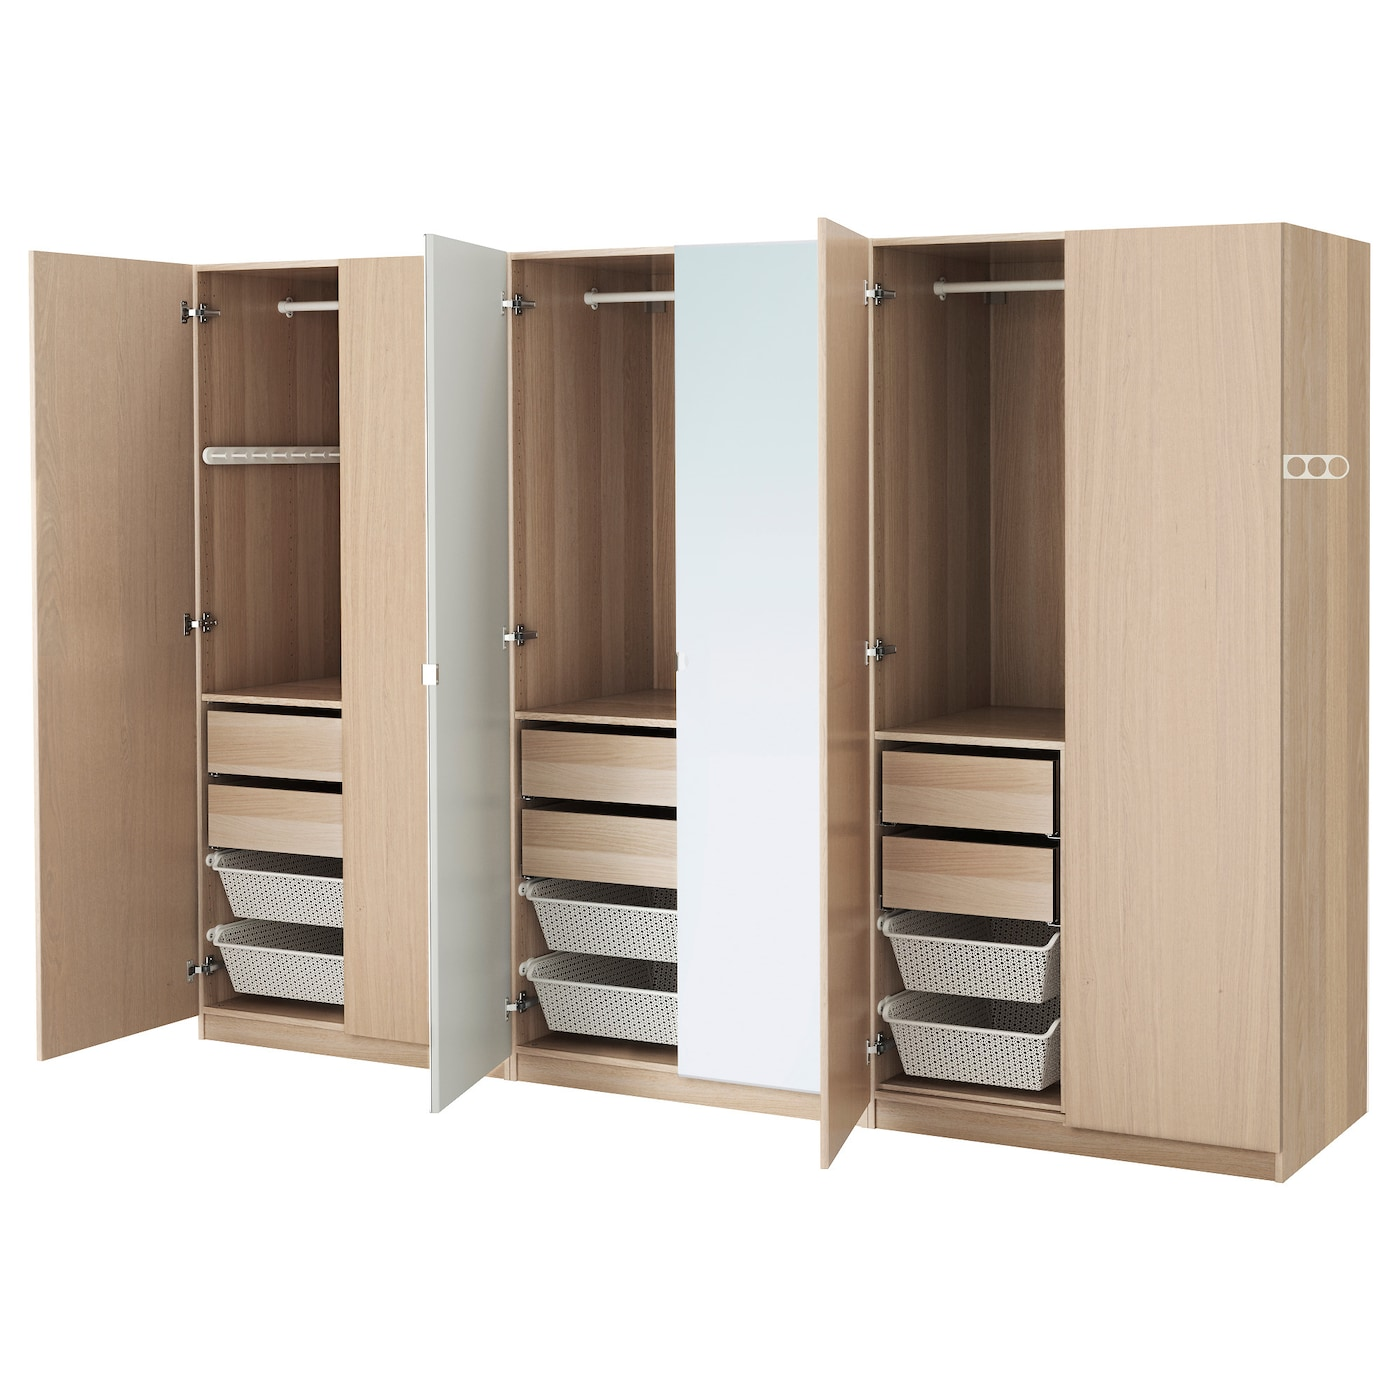 PAX Wardrobe White stained oak effect nexus vikedal 300x60x201 cm  IKEA